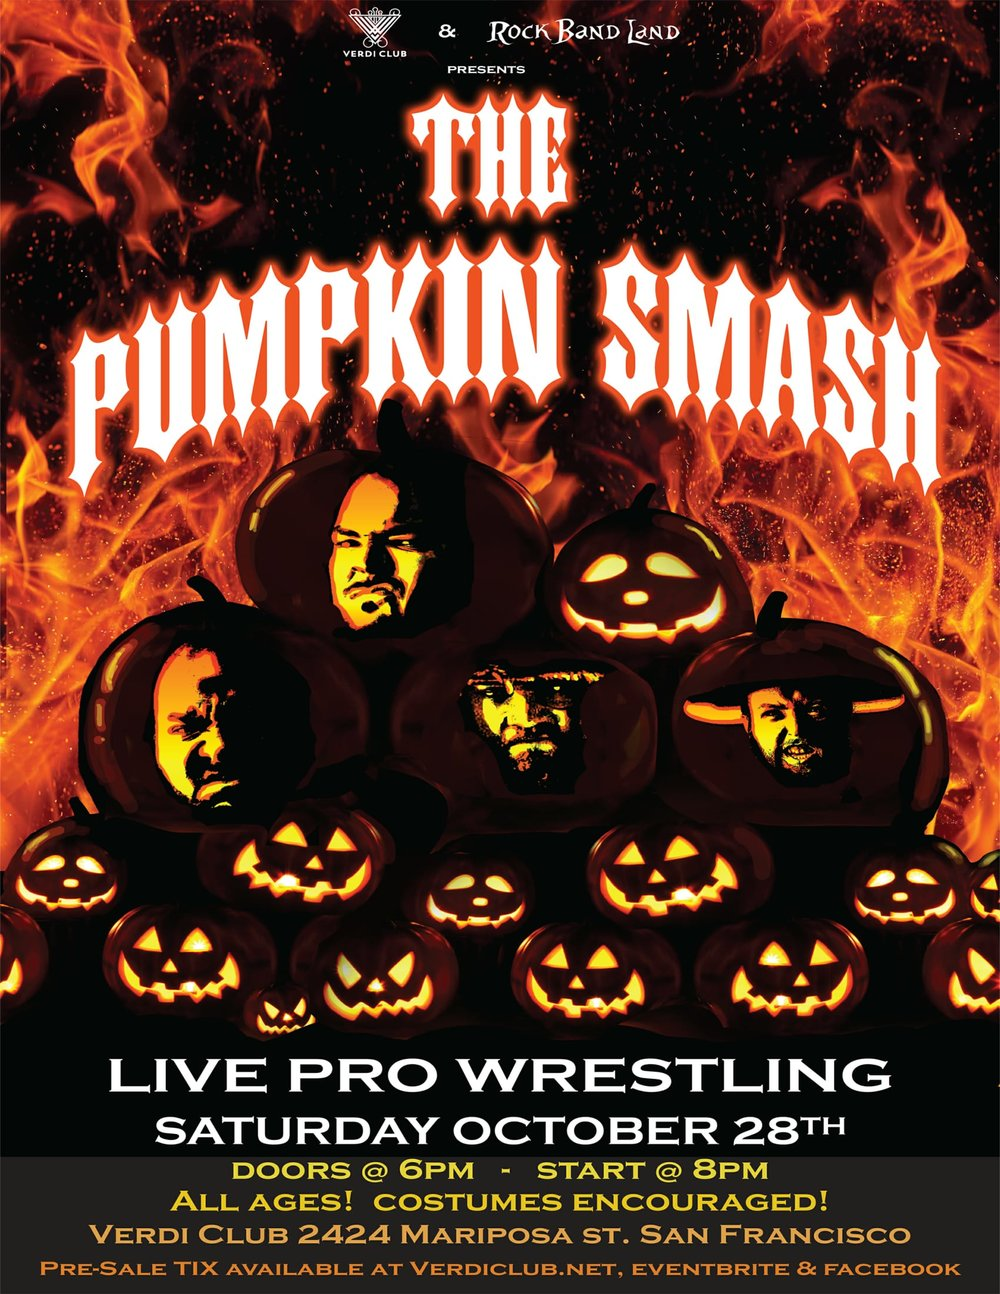 Pumpkin Smash 8 x 11-1.jpg